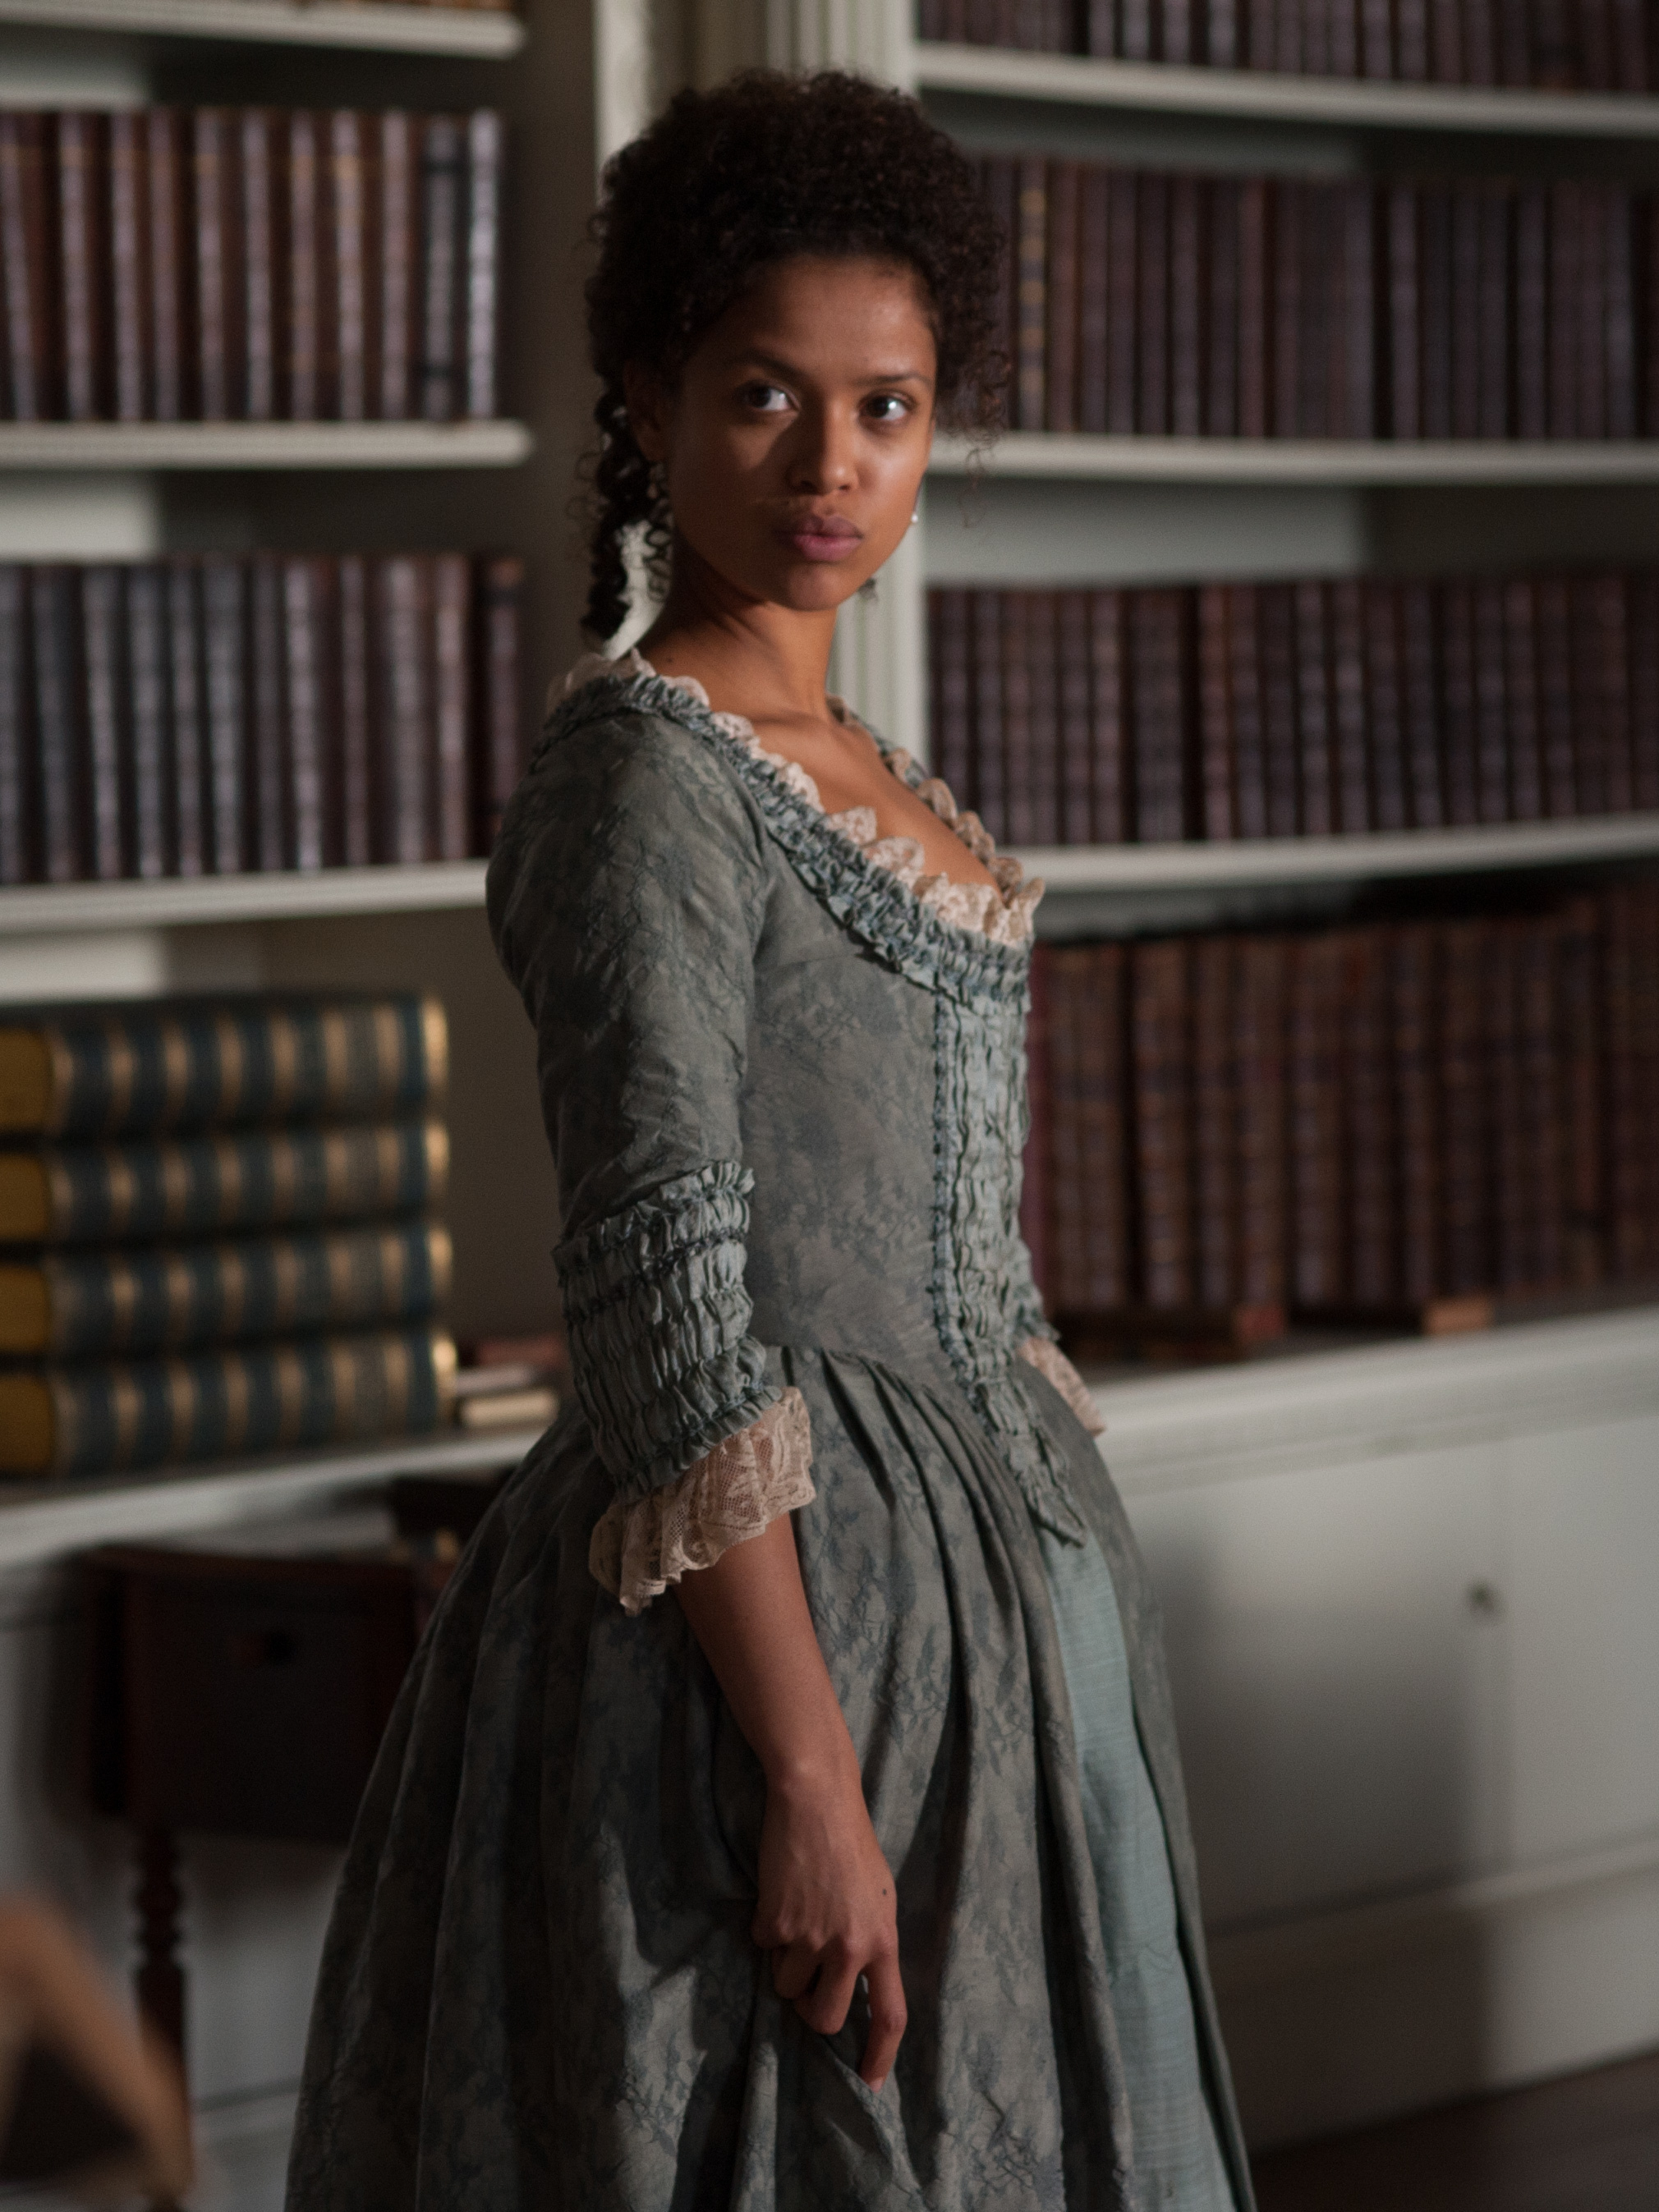 'Belle': Romance, Race And Slavery With Jane Austen Style